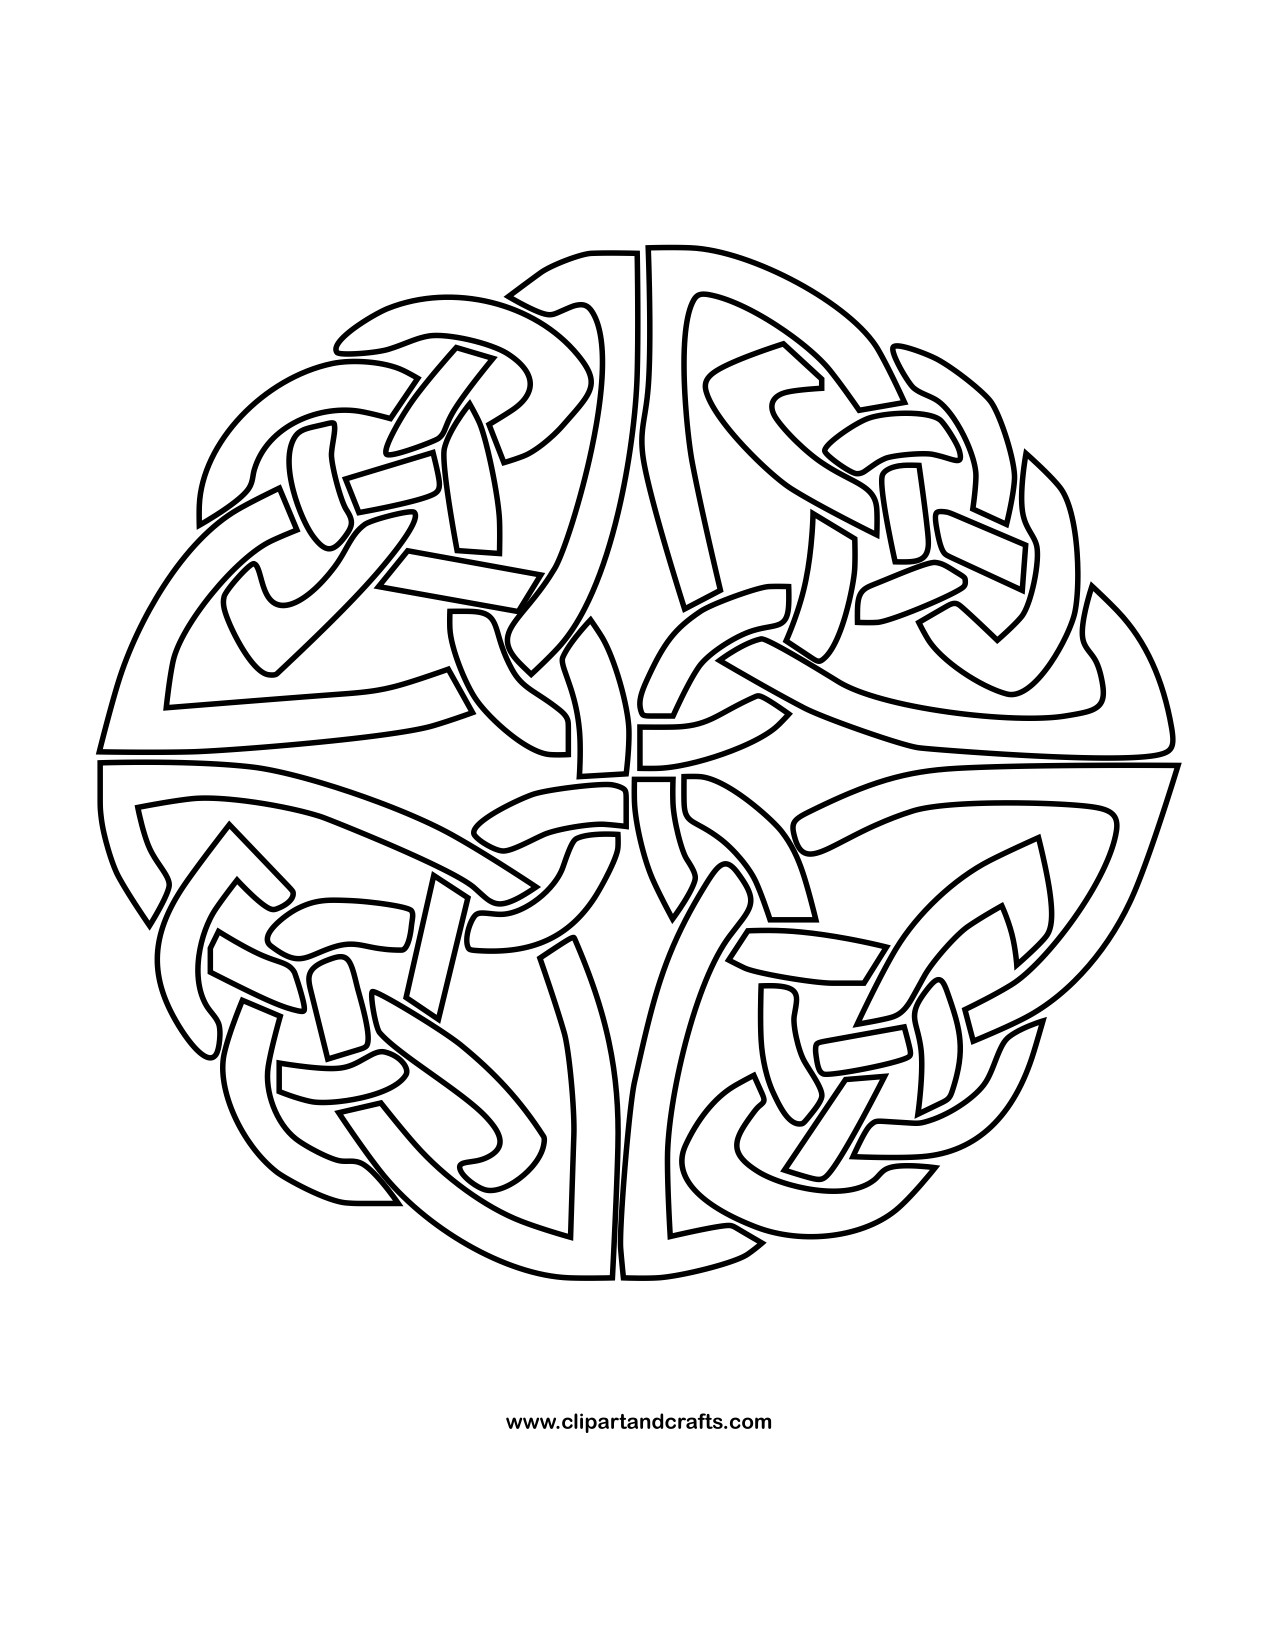 Celtic Coloring Pages For Adults  Mandala Monday More Free Celtic Mandalas to Color